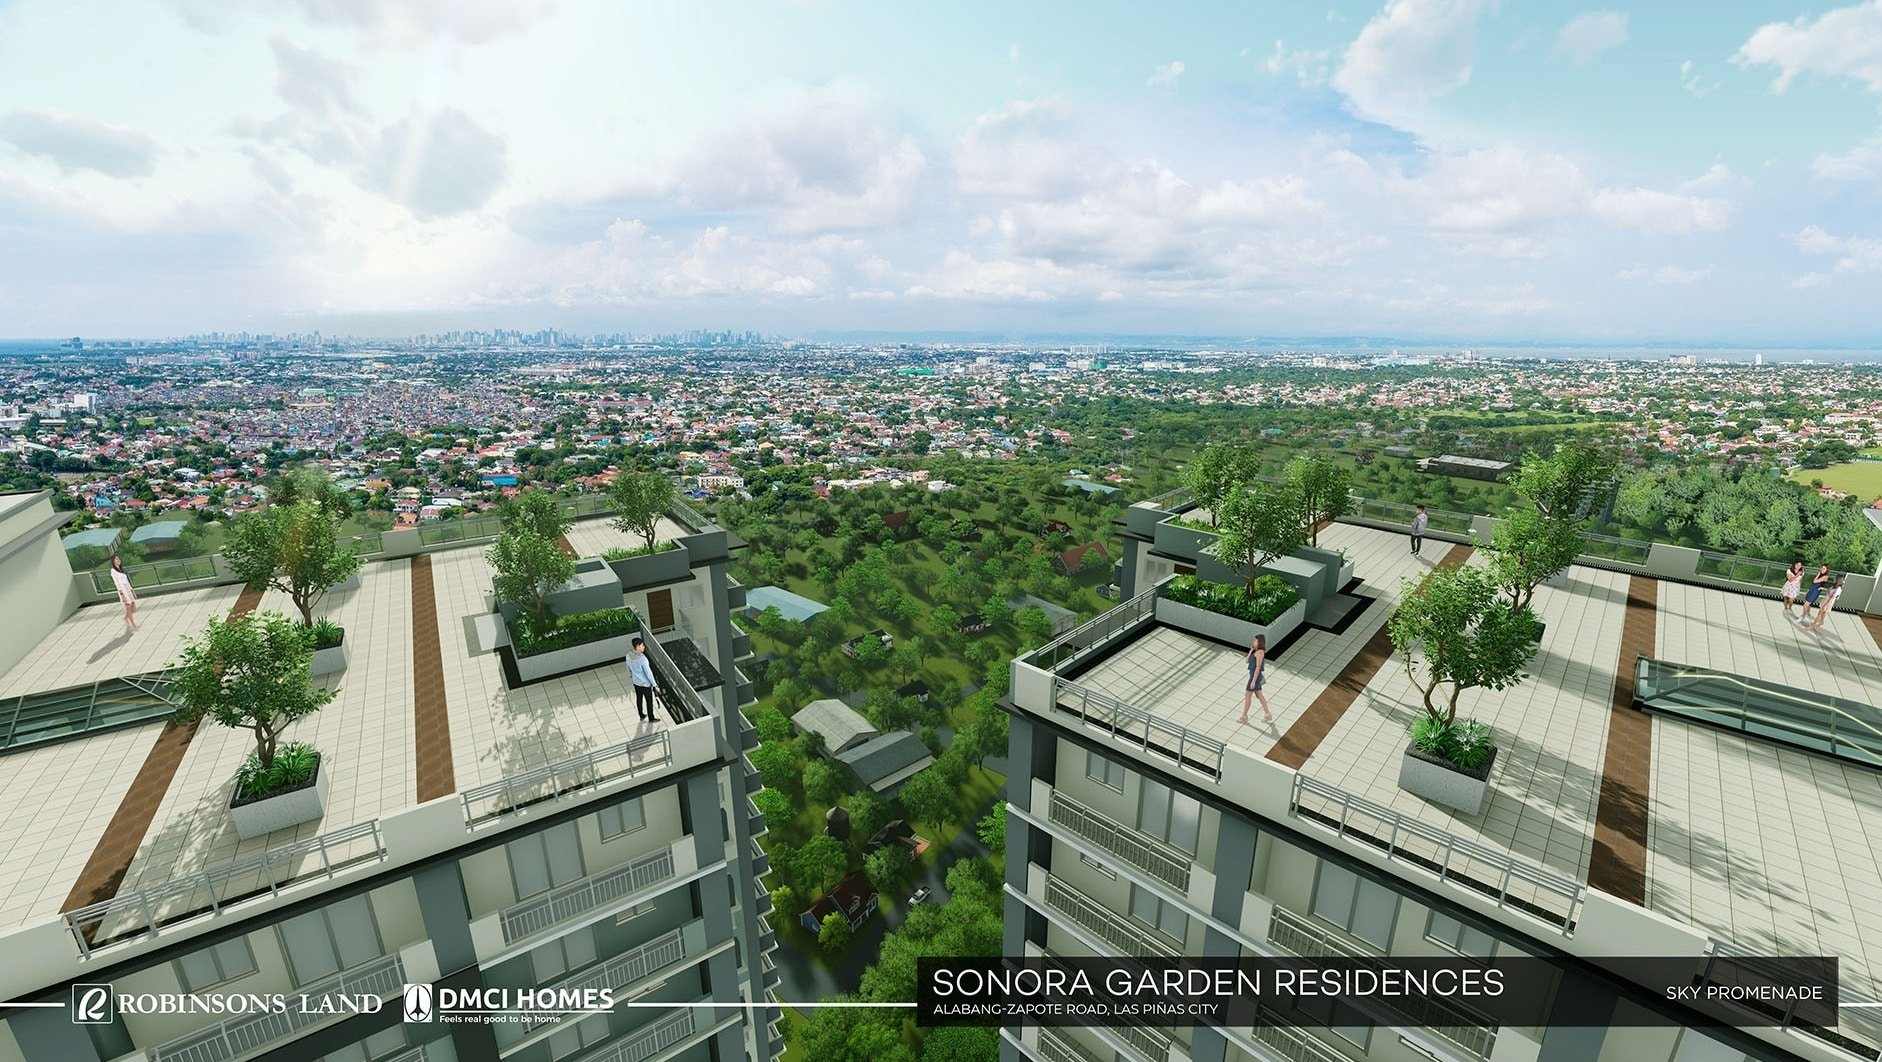 Spacious SKY PROMENADE at SONORA buildings.